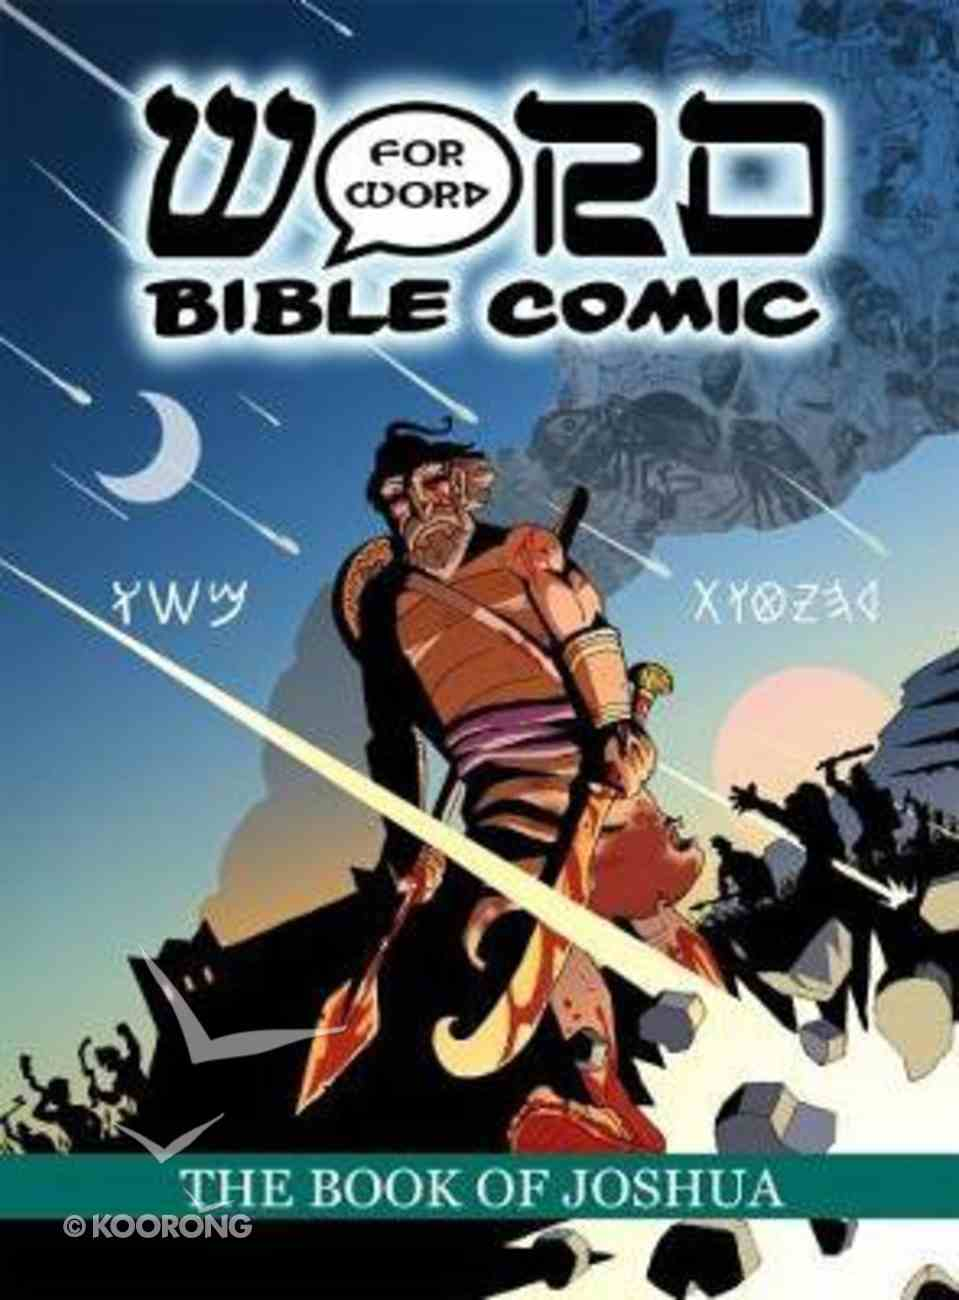 The the Book of Joshua (Word For Word Bible Comic Series) Paperback